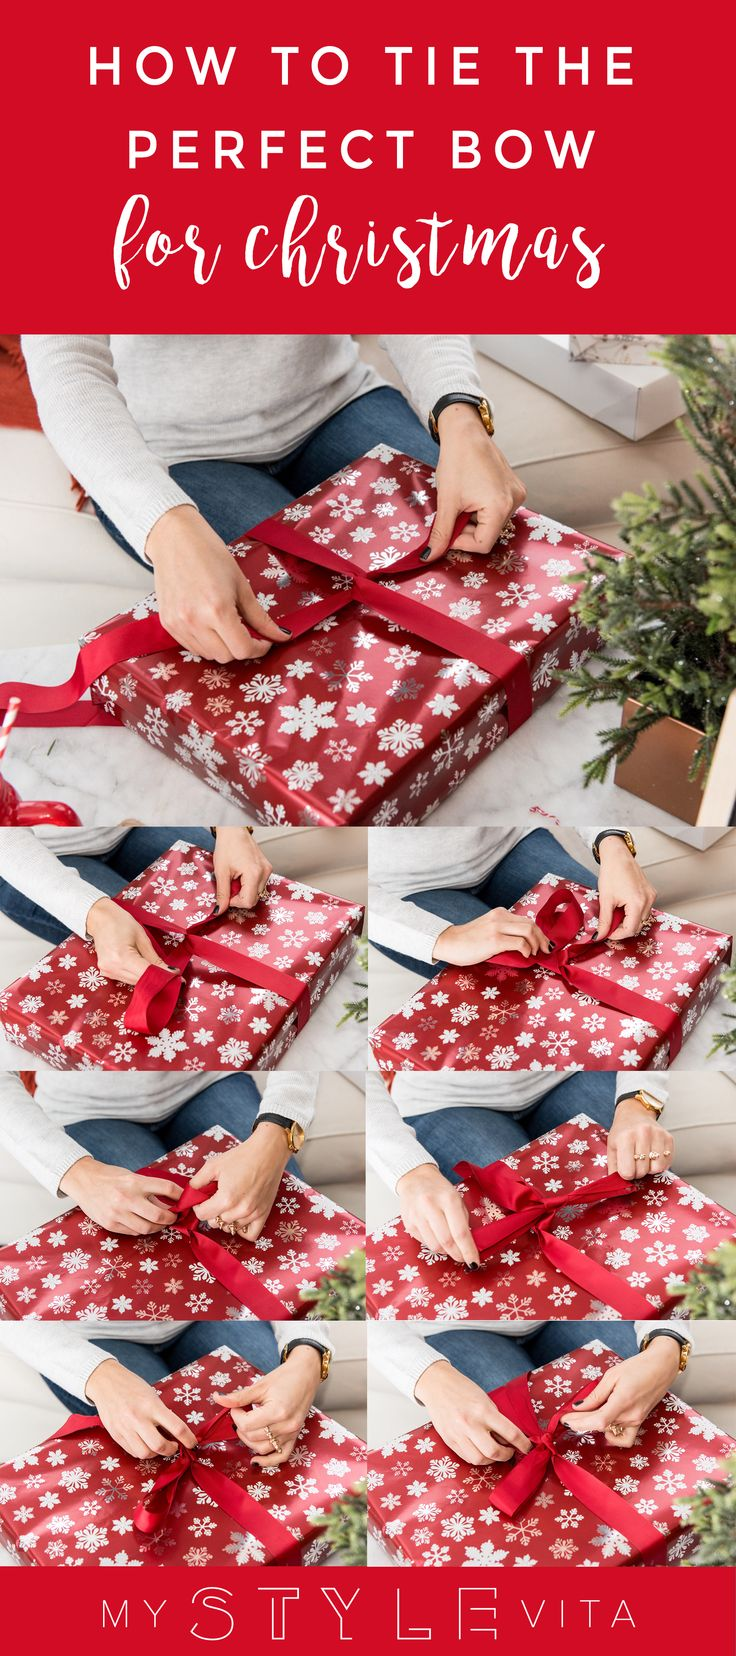 A step by step guide to create the perfect bow for all your christmas presents this year. @mystylevita